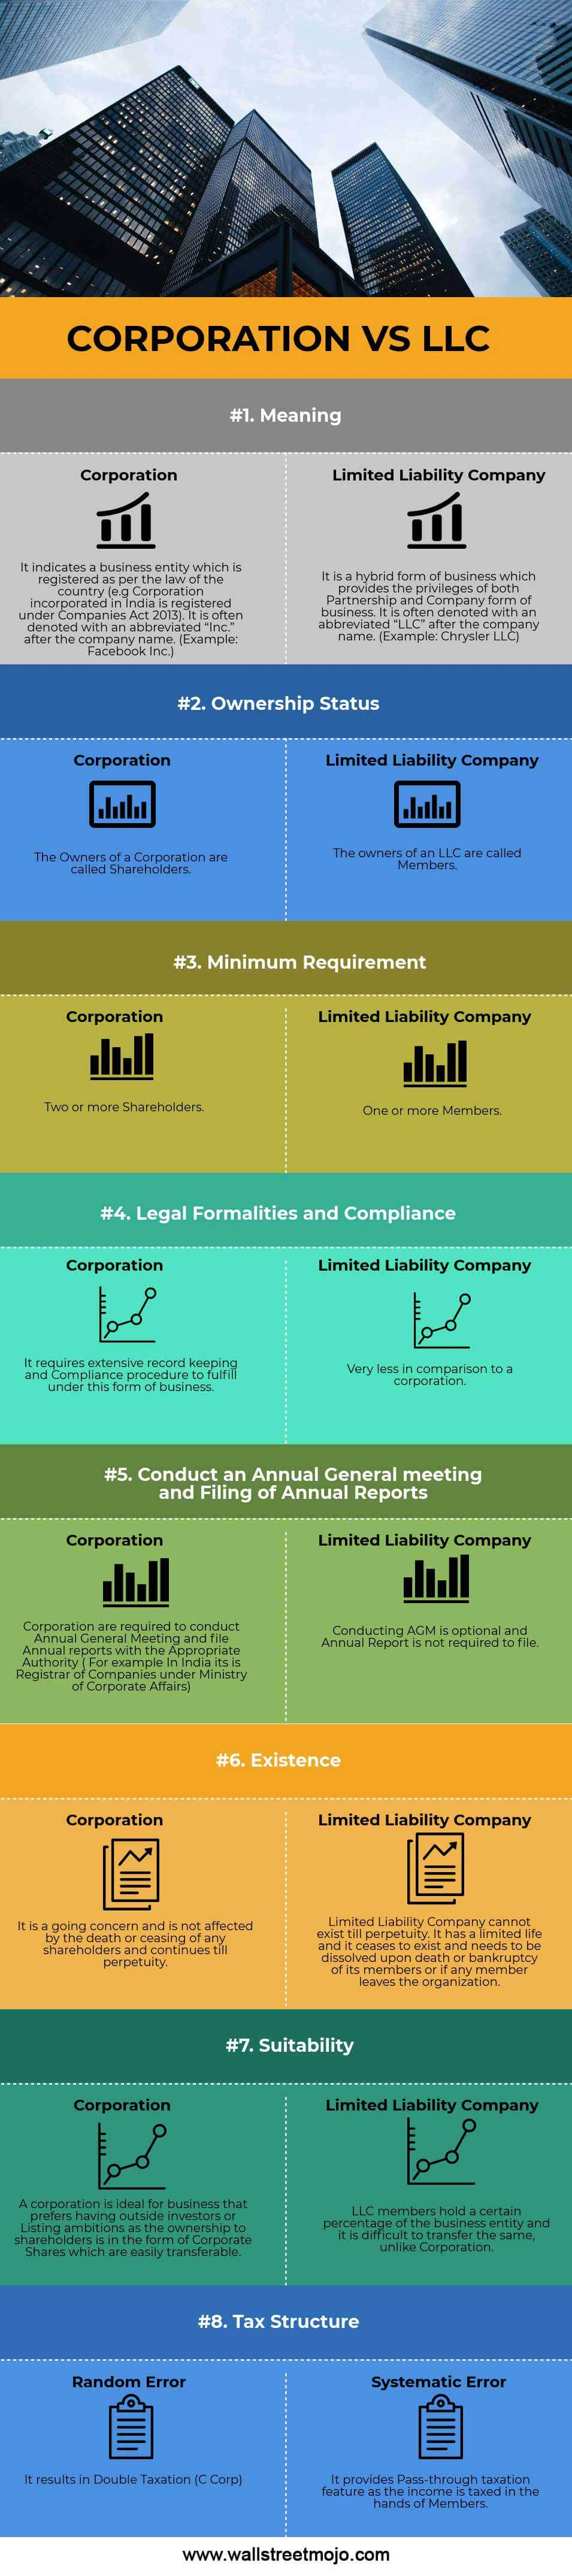 CORPORATION-VS-LLC-Info